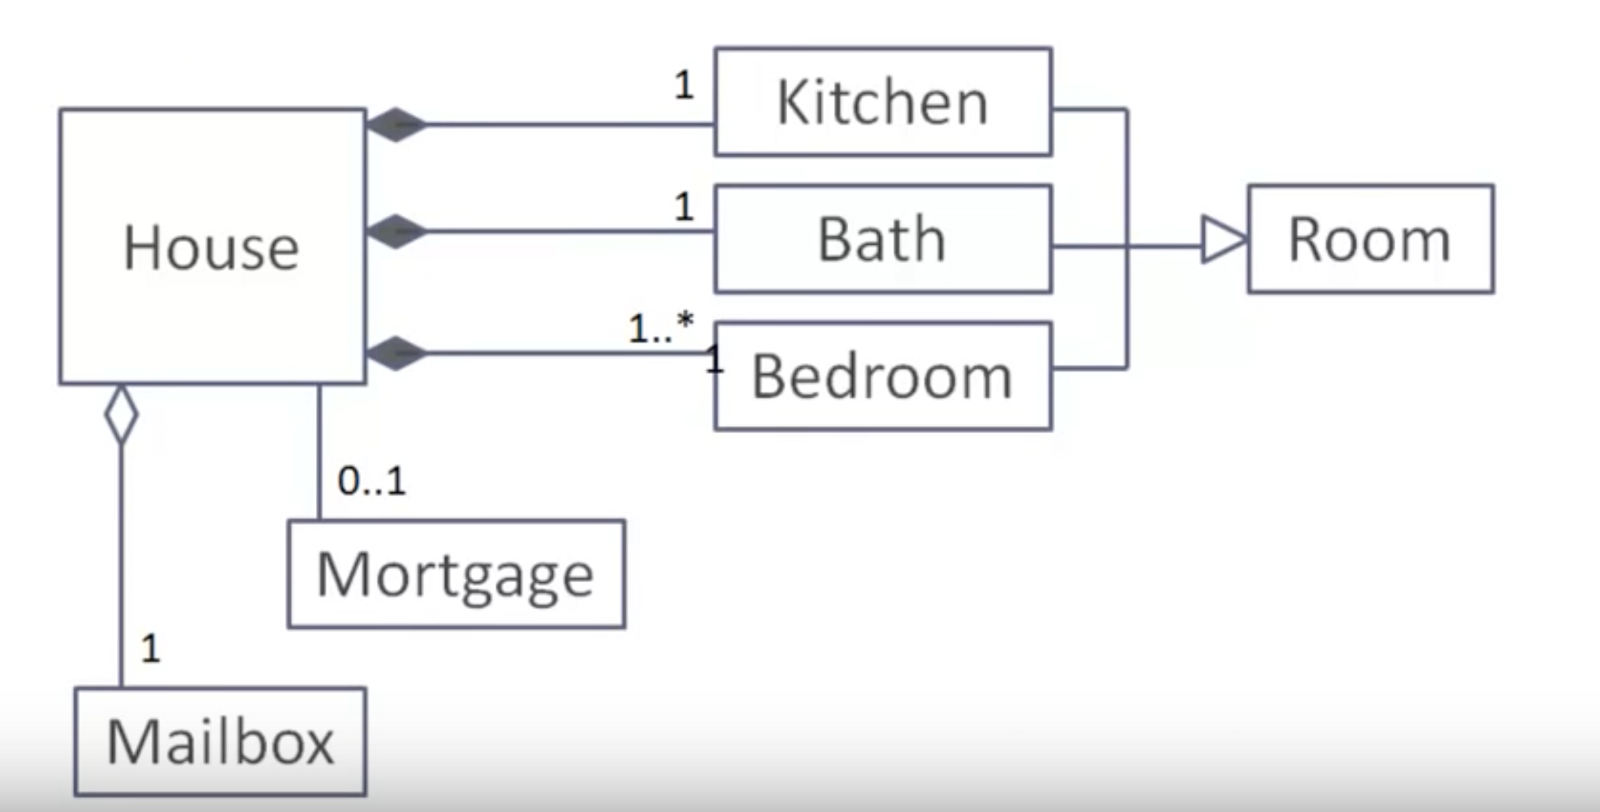 Uml class diagrams tutorial step by step salma medium the above uml diagram shows that a house has exactly one kitchen exactly one bath atleast one bedroom can have many exactly one mailbox ccuart Images